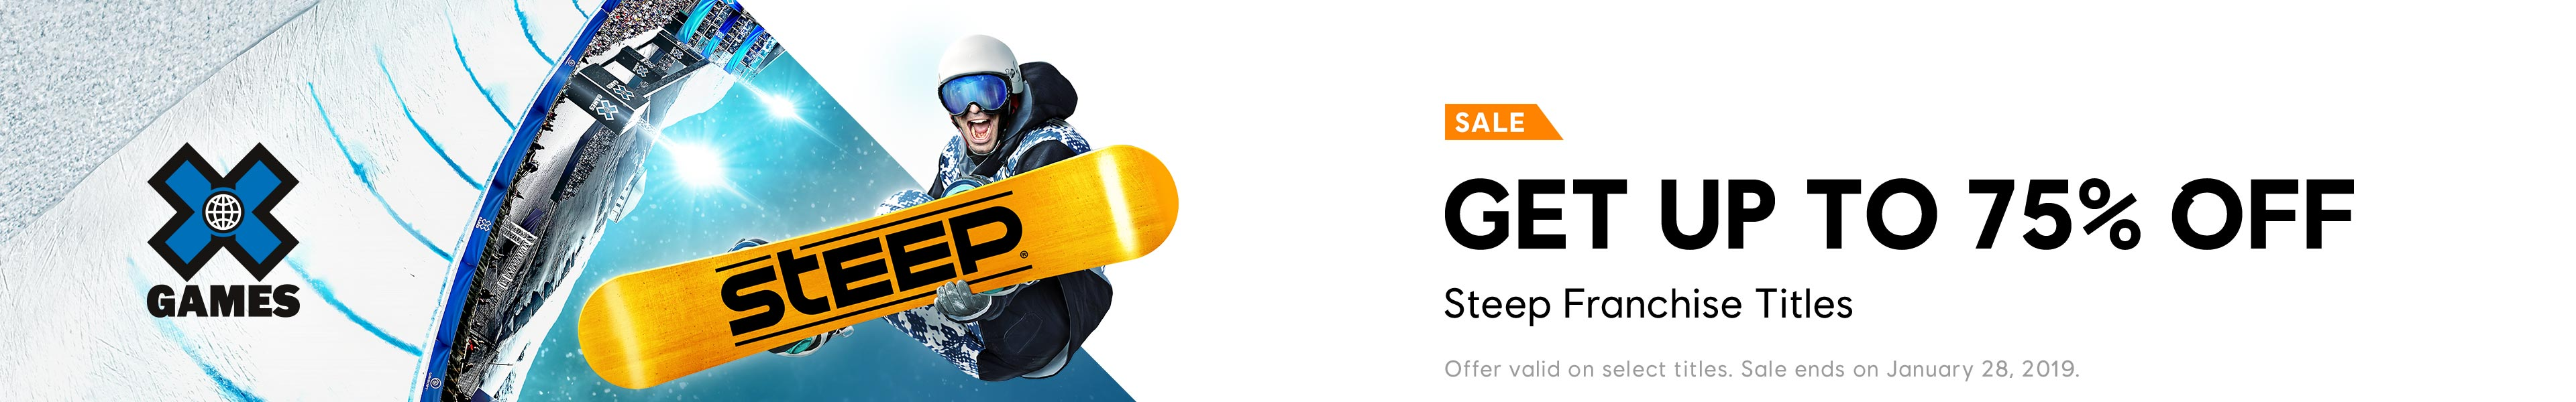 Steep X Games Sale Category banner